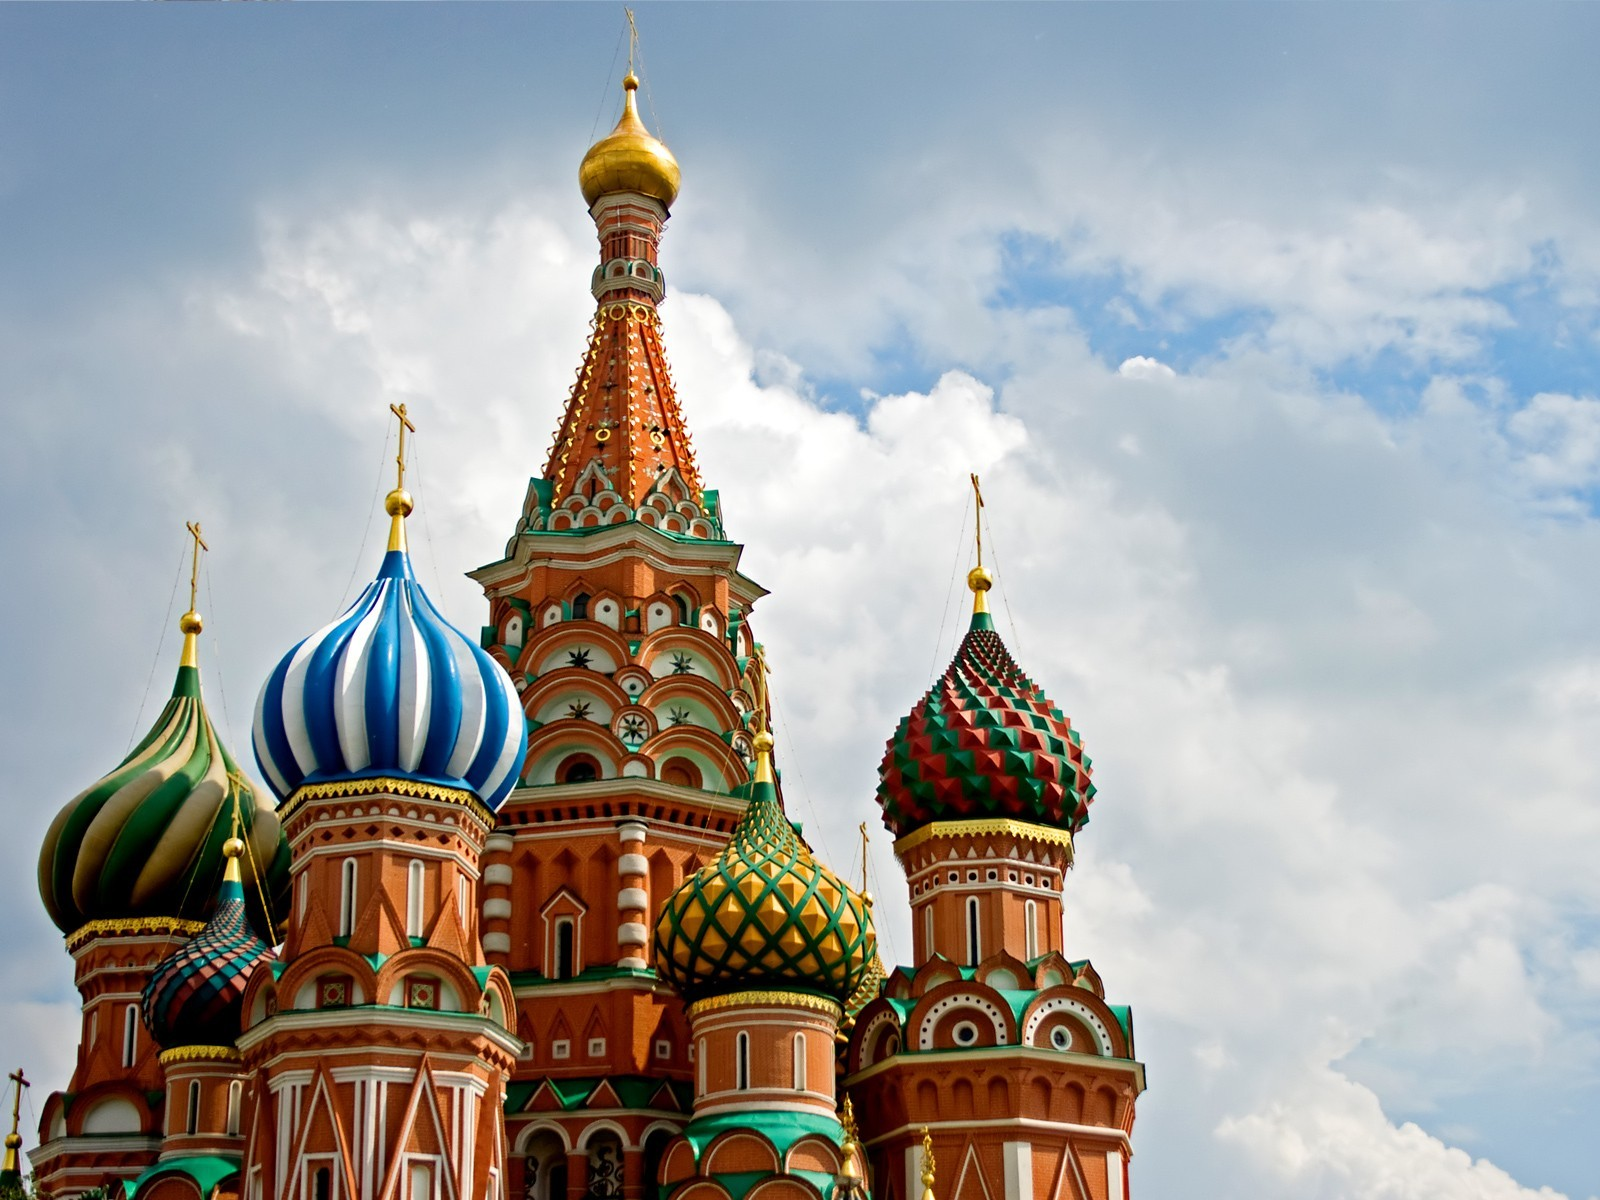 architecture buildings religion Moscow HD Wallpaper